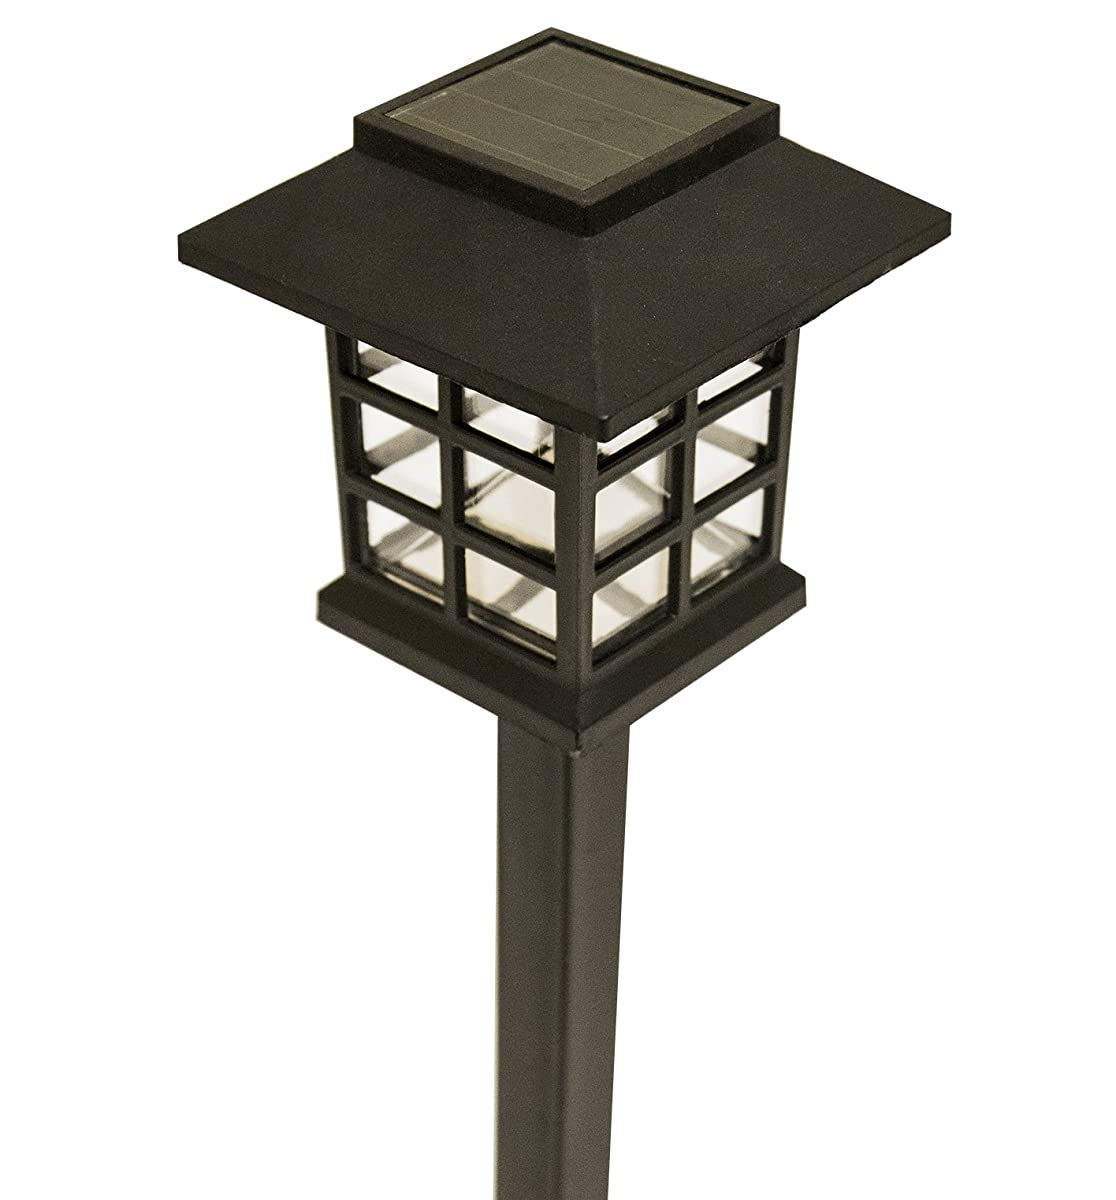 Solarlicht Garten Sogrand 8pcs Pack Solar Lights Outdoor Solar Light